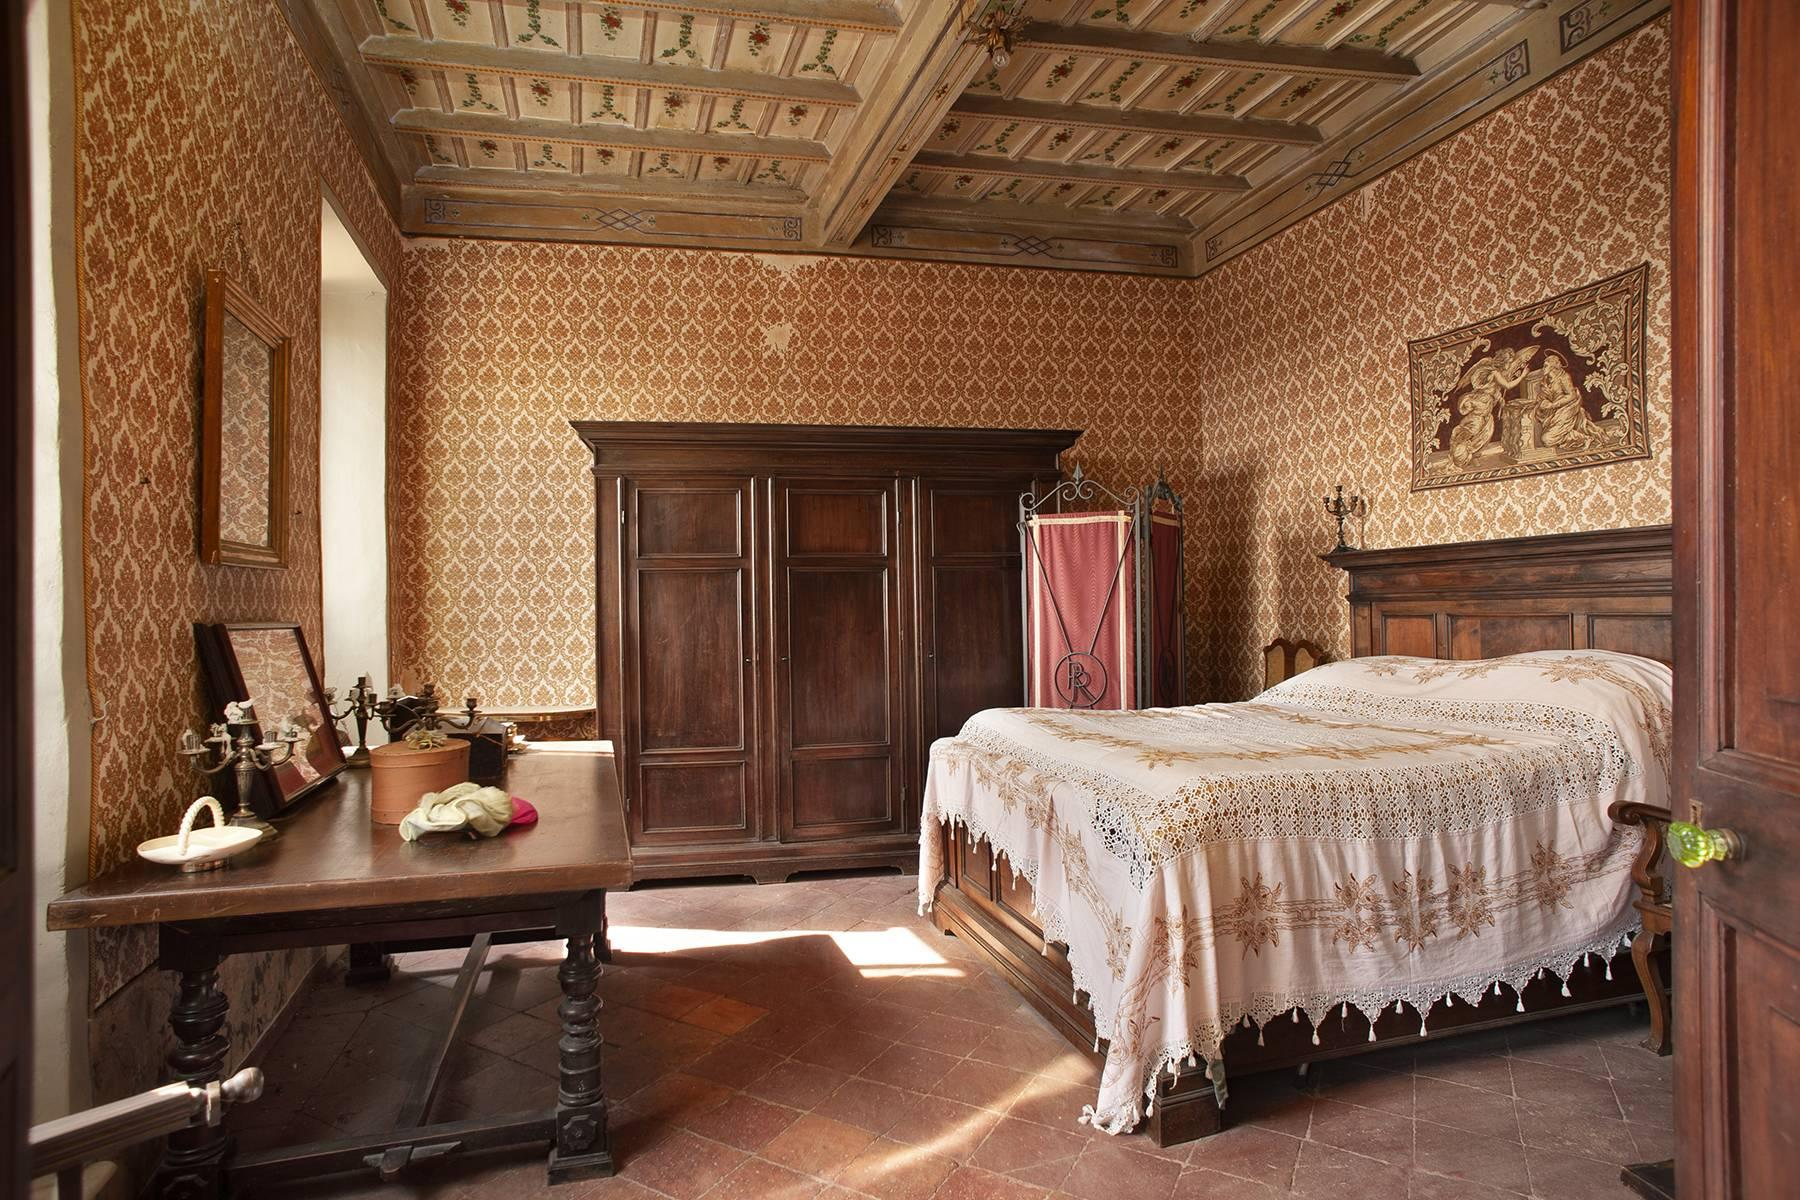 Historic Mansion in the countryside near Rome - 9